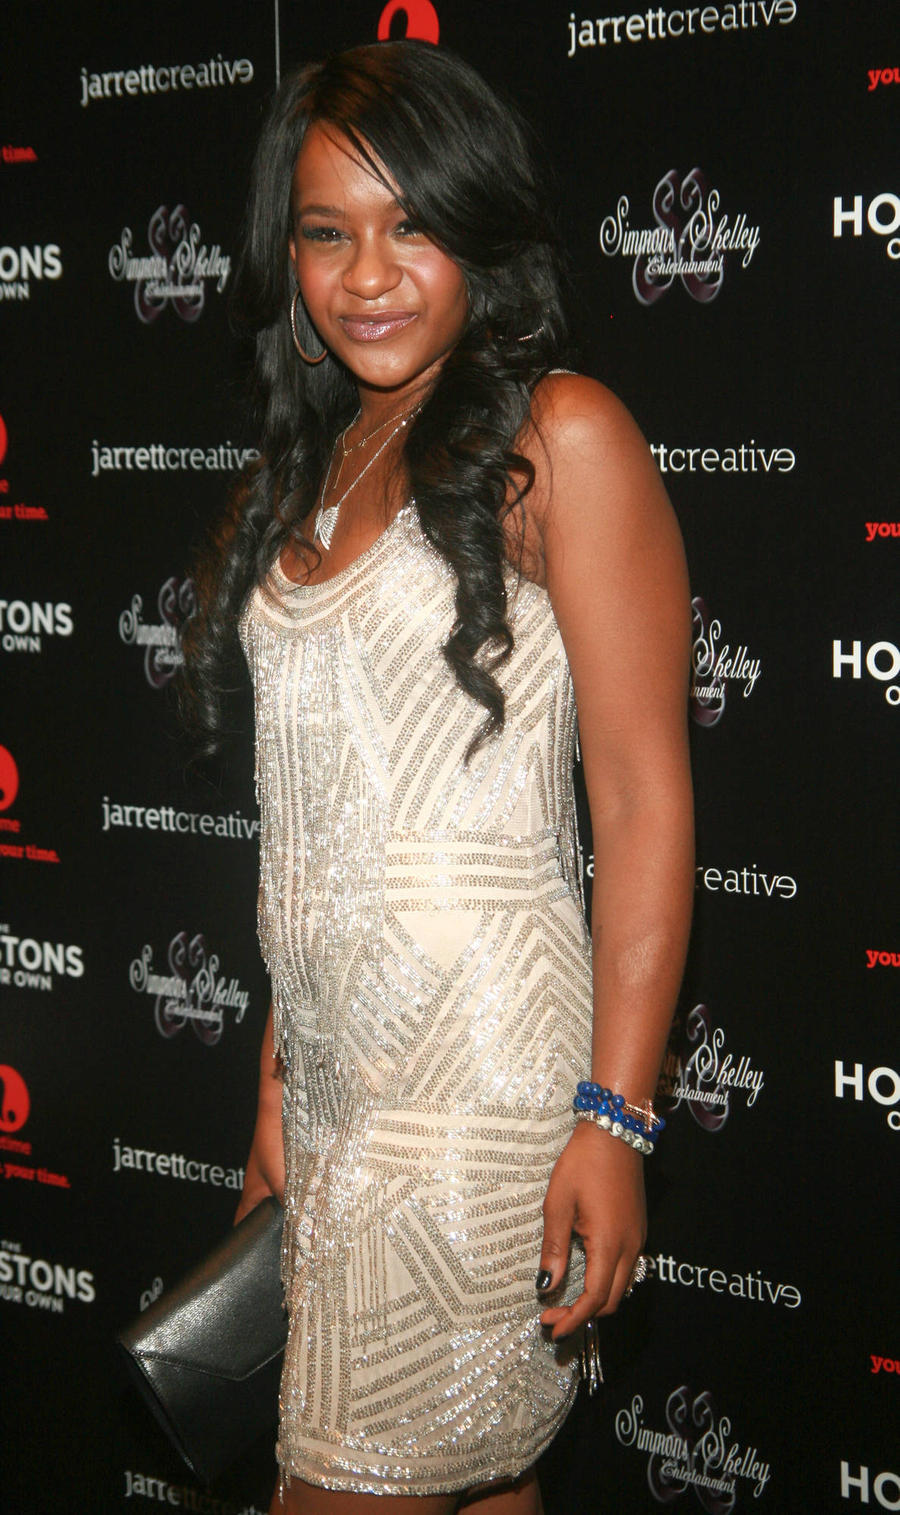 Bobbi Kristina Brown's Death Due To Drug Use And Drowning